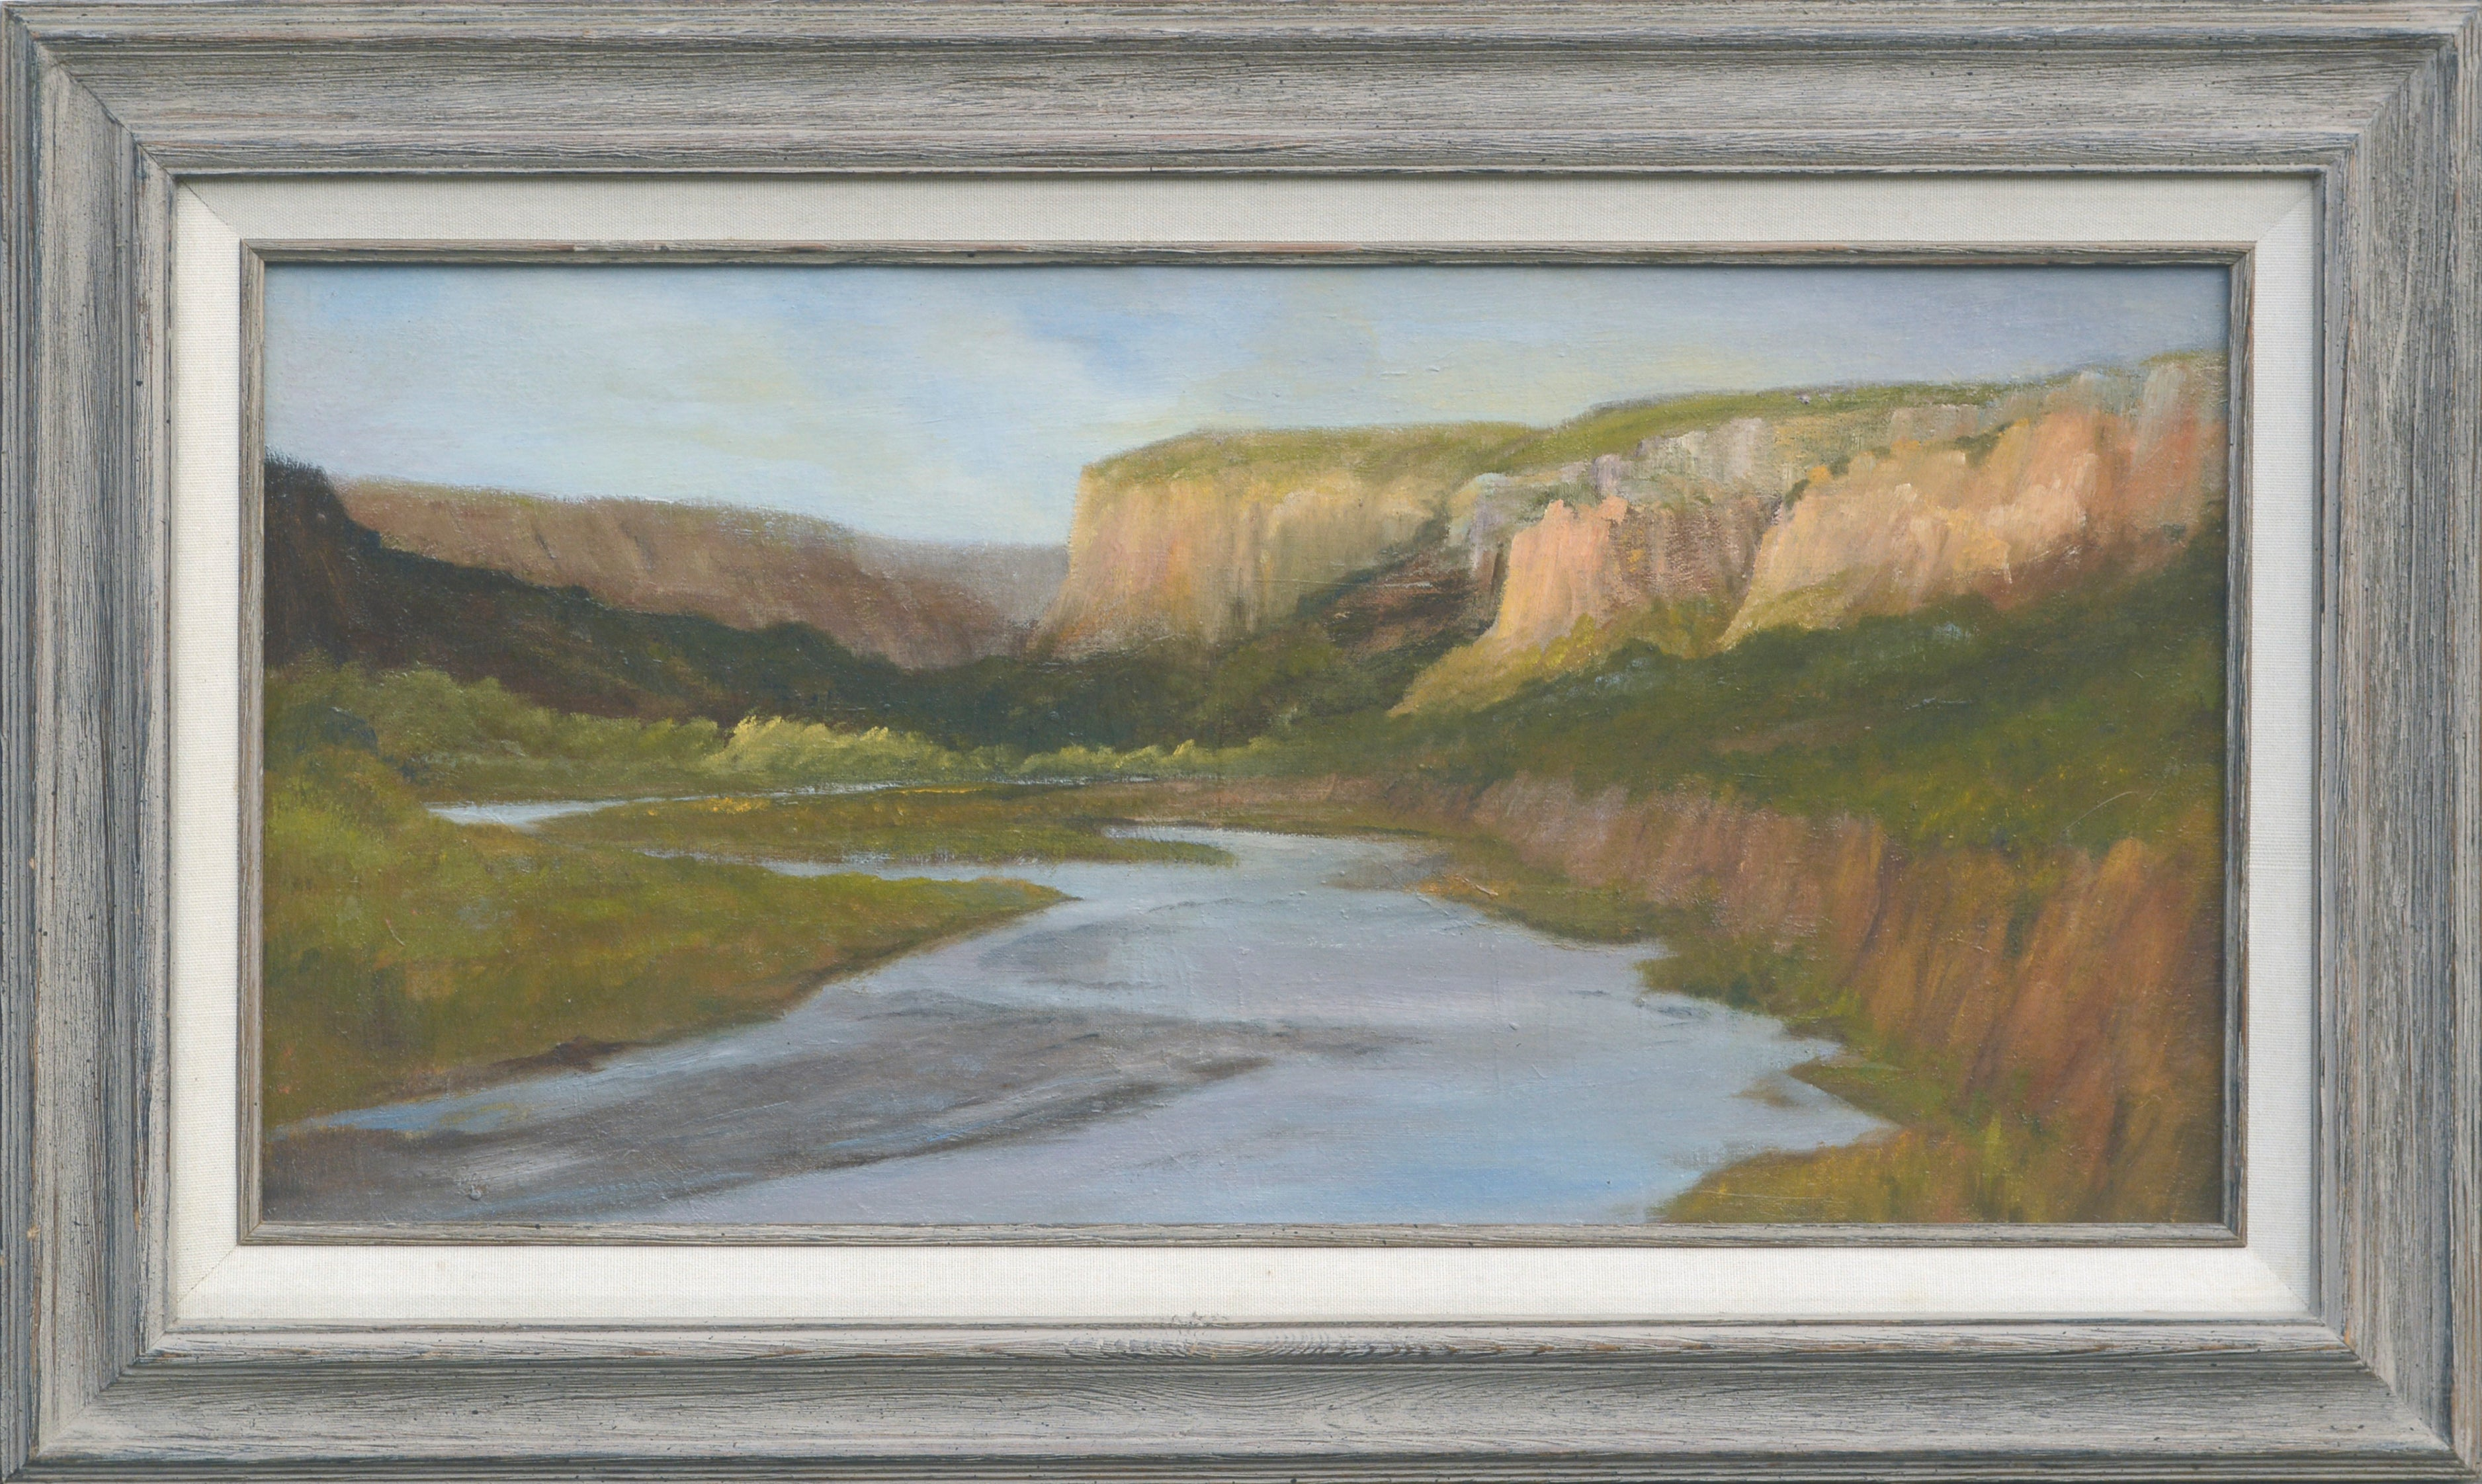 The River Mouth - Landscape by Kenneth Lucas